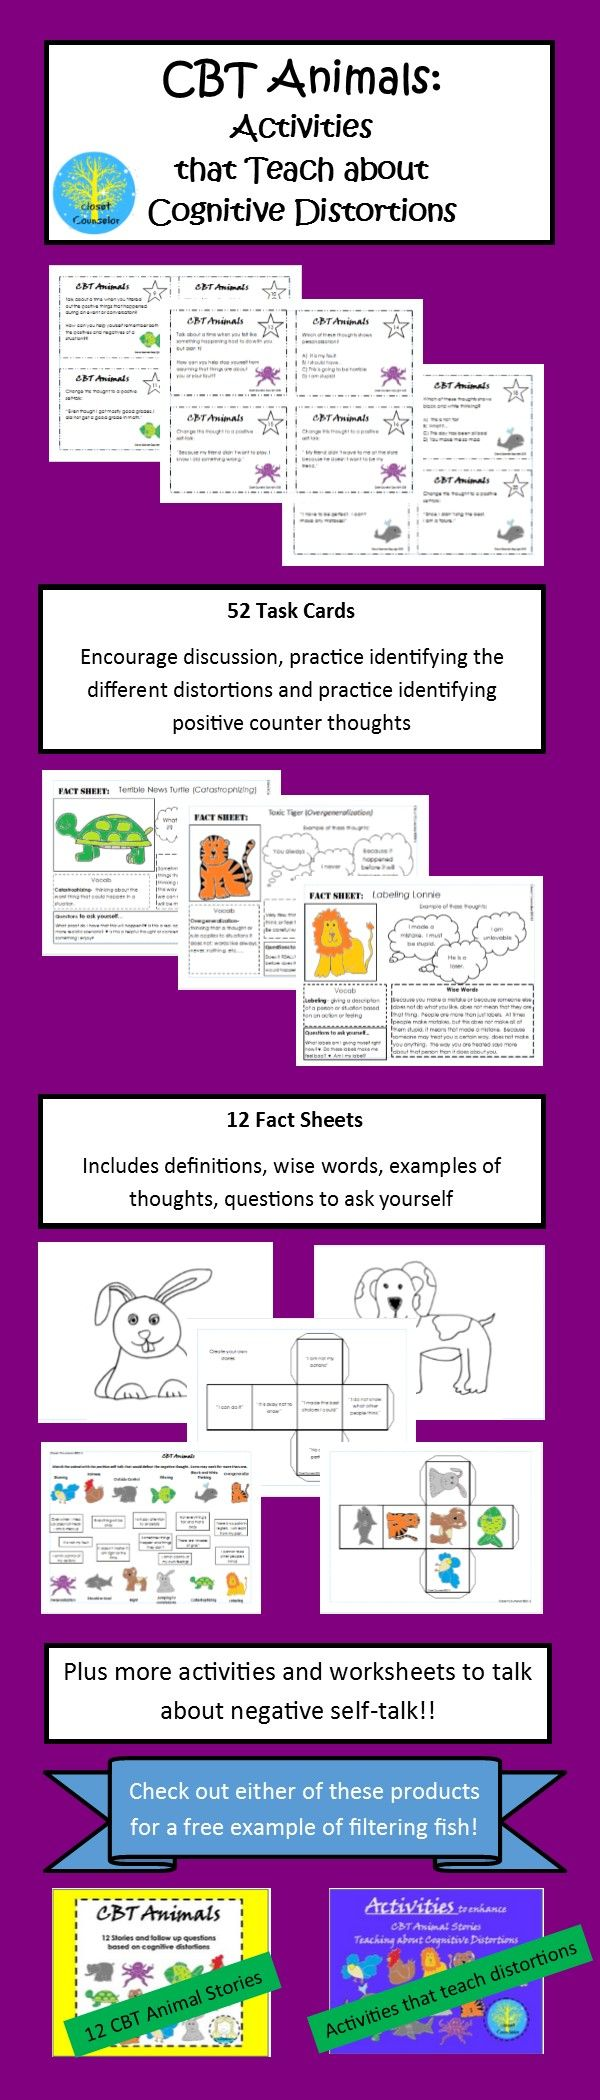 worksheet Cognitive Distortion Worksheet best 25 cognitive distortions ideas on pinterest cbt therapy as a follow up to the successful animals stories that teach distortions